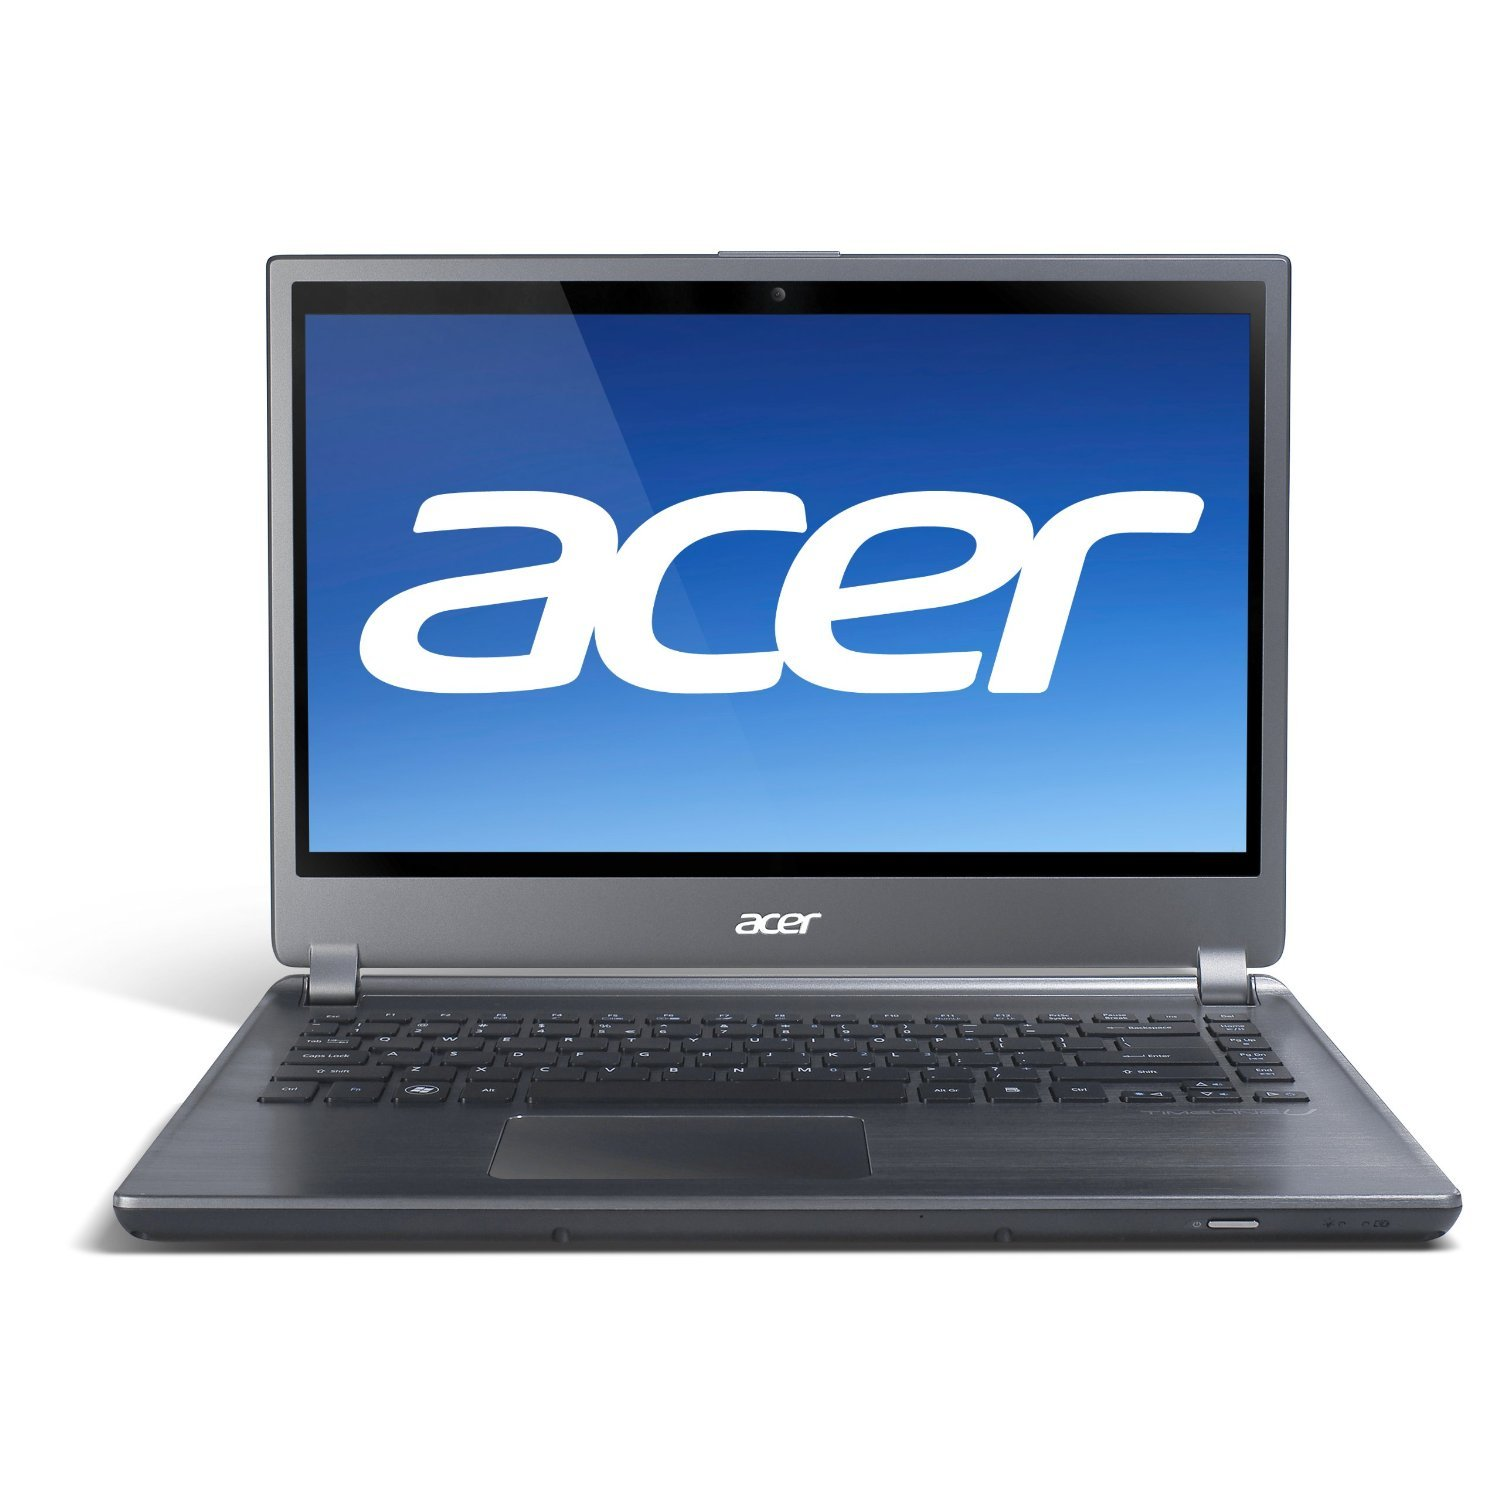 Acer TravelMate 8471 Timeline Notebook Synaptics Touchpad Drivers for Windows 10